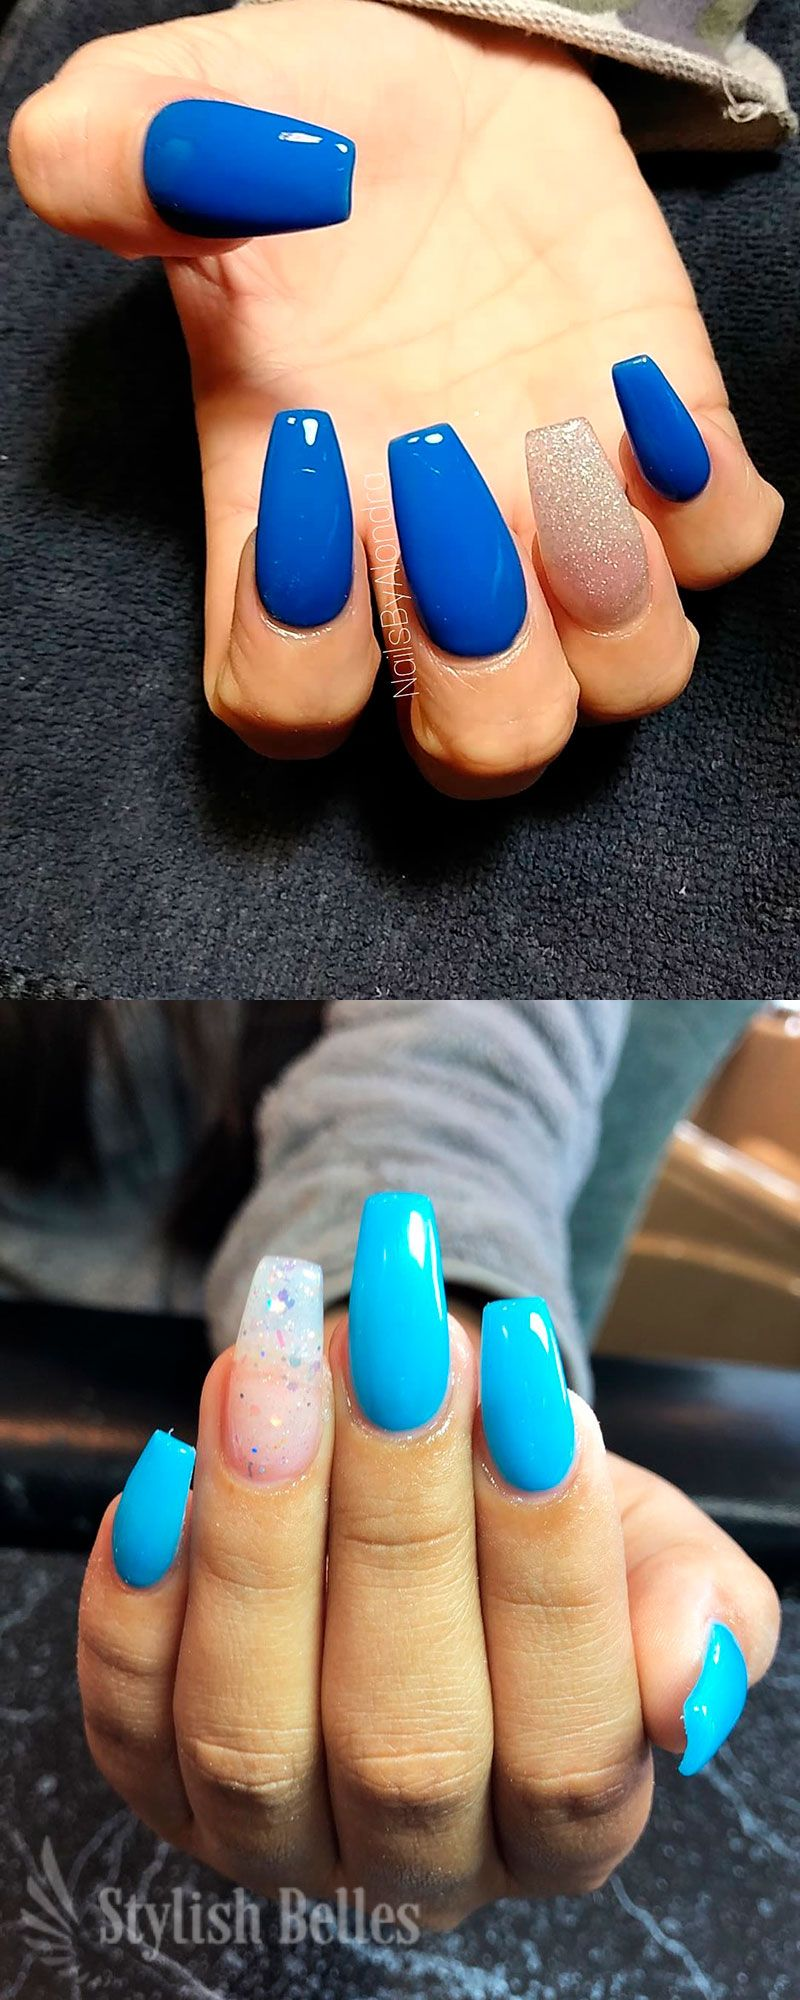 Cute Blue Coffin Nails With An Accent Glitter Nail Ideas Blue Acrylic Nails Coffin Nails Blue Coffin Nails